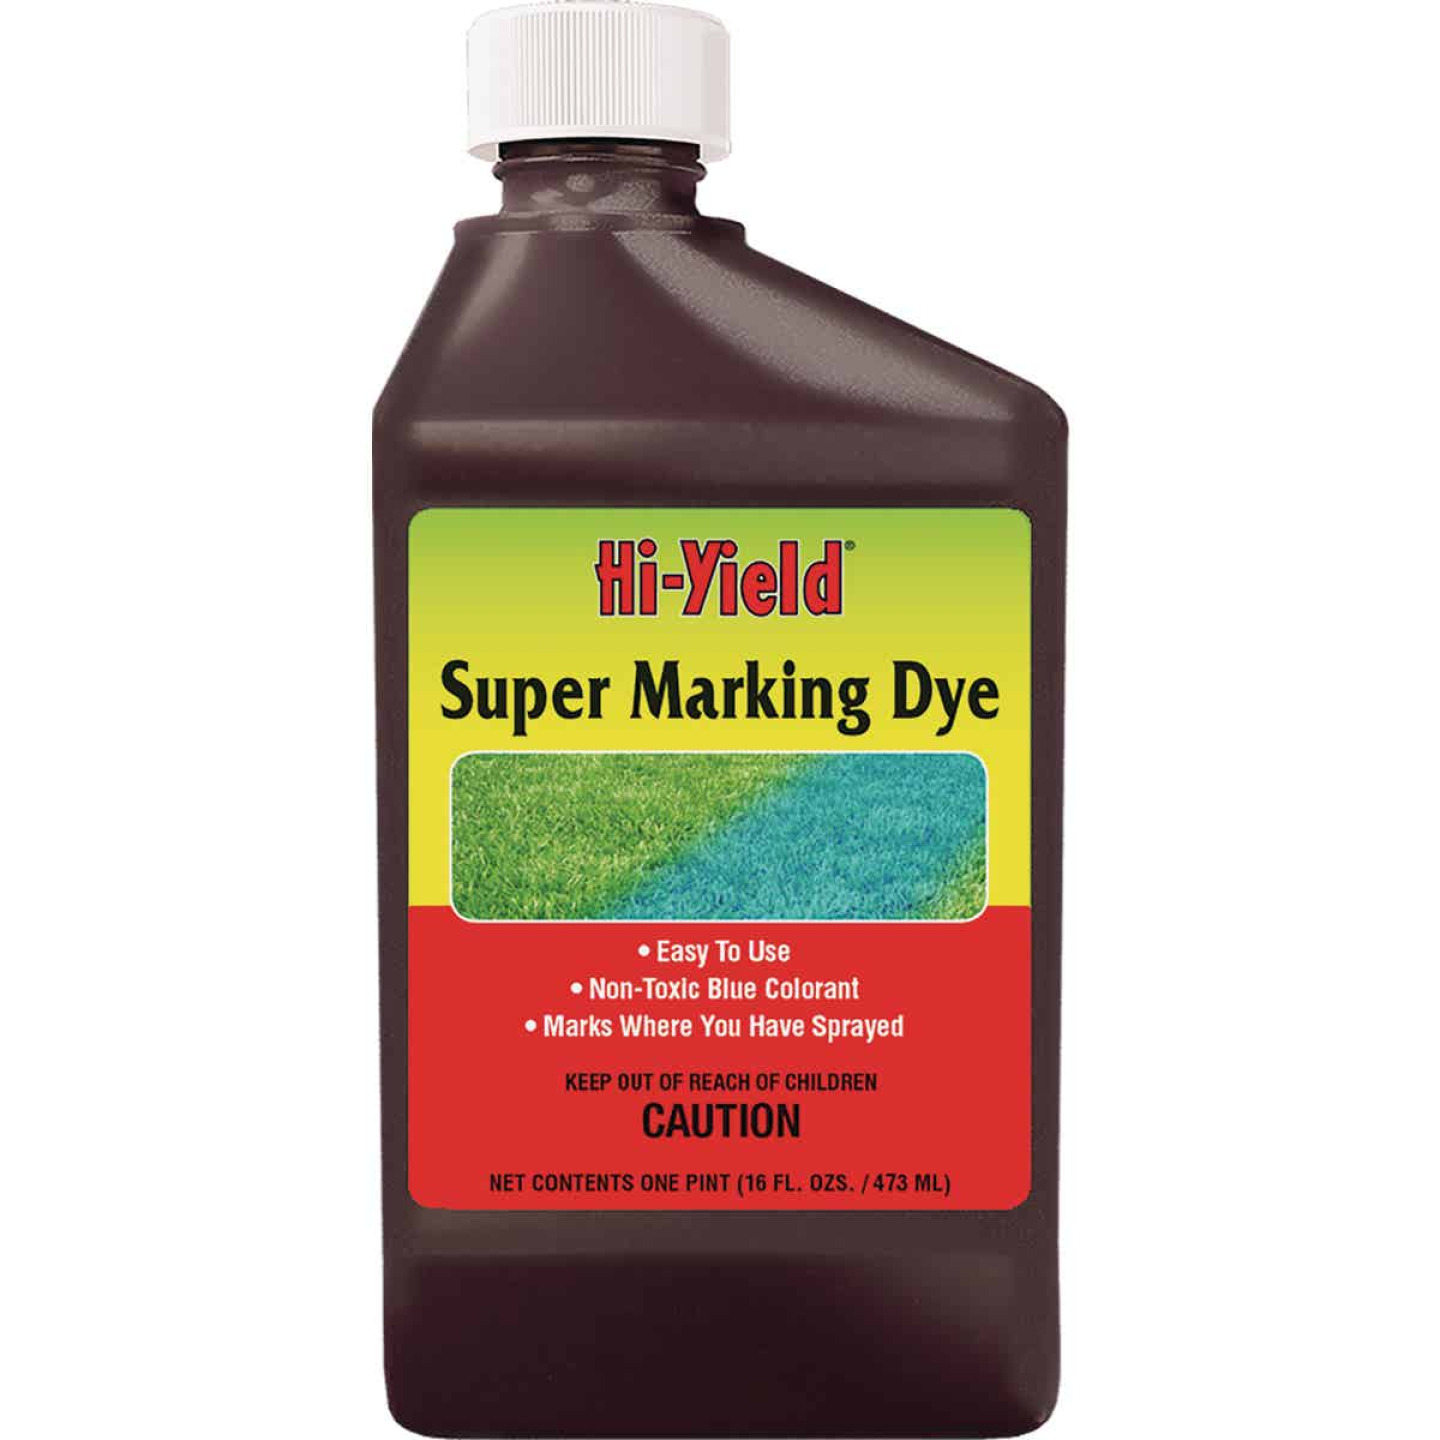 Hi-Yield 16 Oz. Blue Concentrate Super Marking Dye Image 1